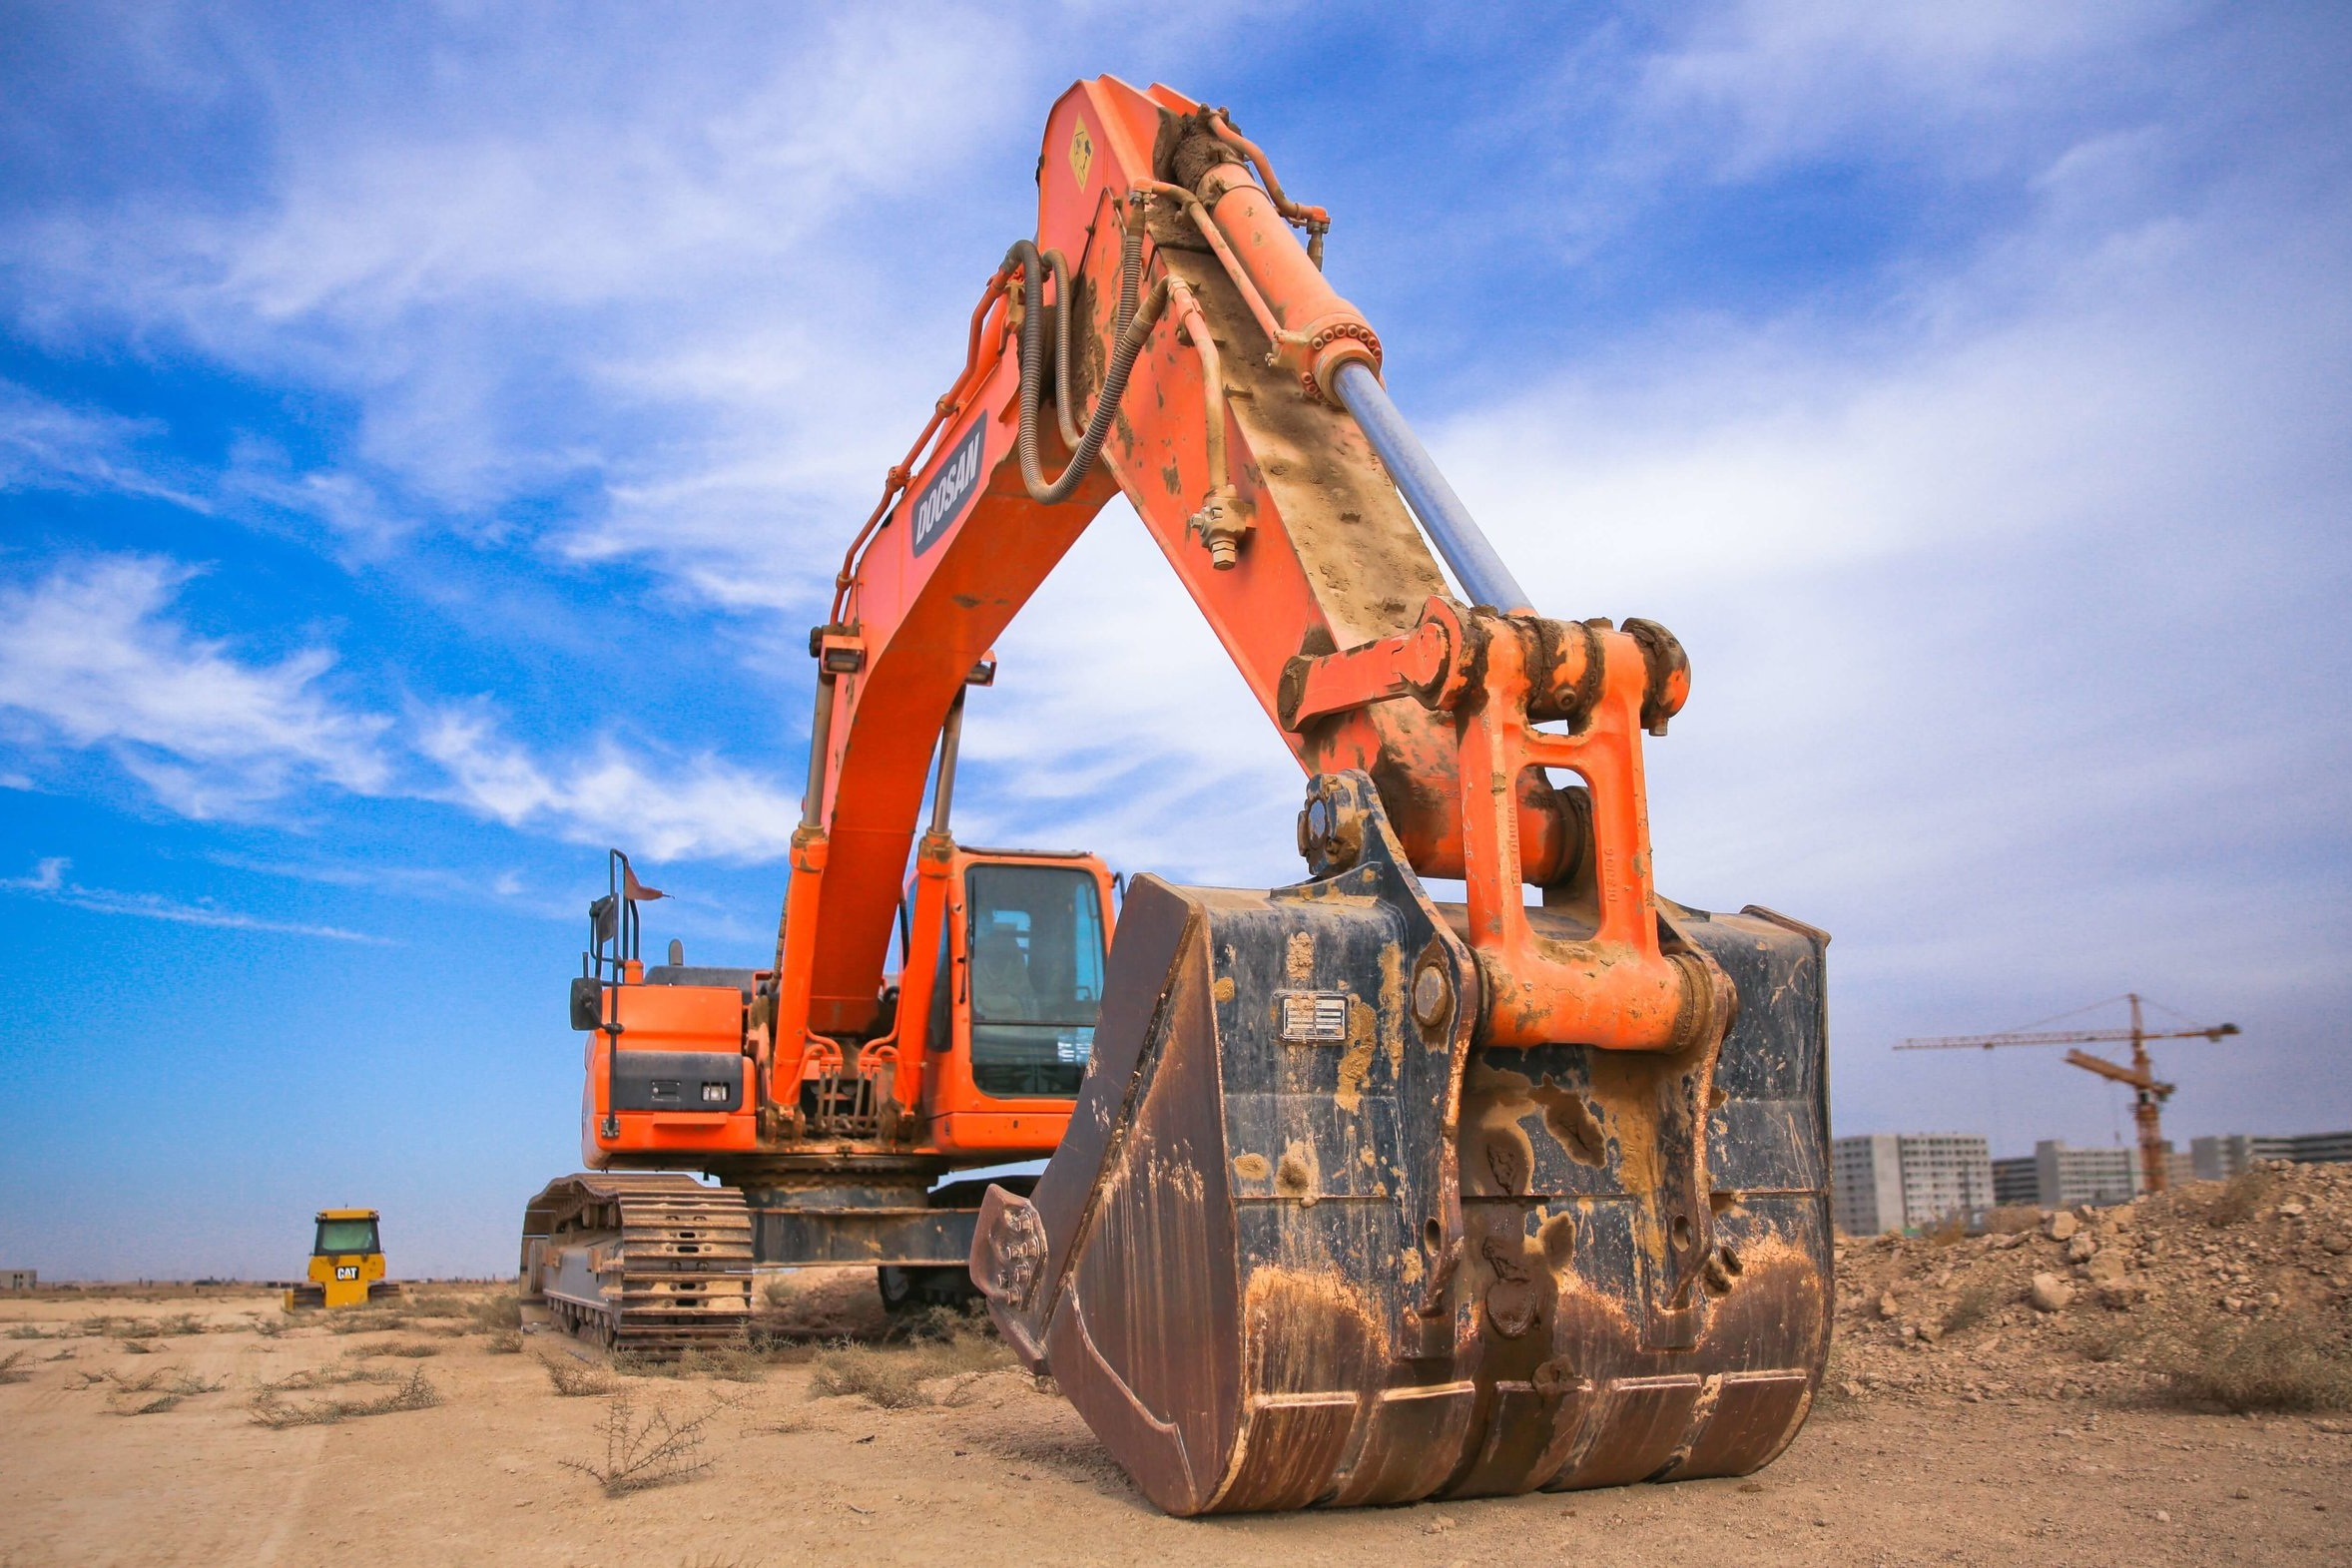 Construction, Heavy Equipment, Motor Homes, Buses & Big Rigs - Much like our fleet services, DurRely understands that when your equipment is down, so are you. We don't want you to lose time, money, nor resources waiting for a reputable auto glass vendor to service you. We are ready to assist as quickly as possible, with the ability to cut and install glass while on site. Whether it's tempered, laminated, curved, or flat glass, we've got your back.